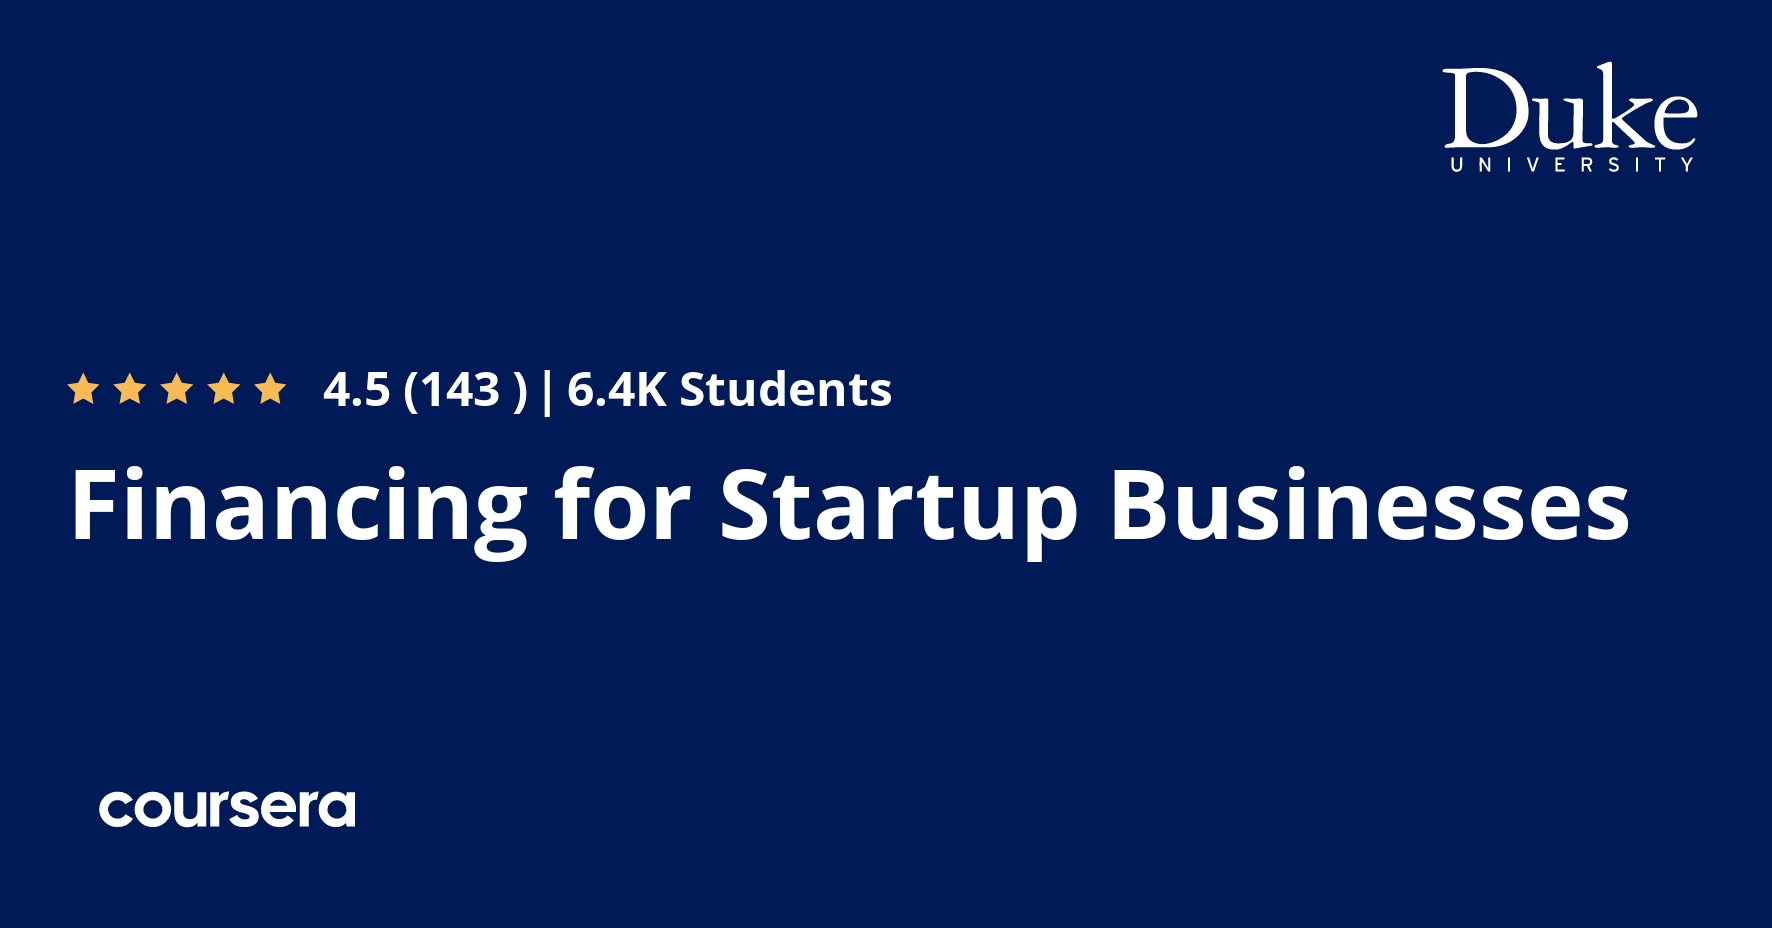 Financing for Startup Businesses